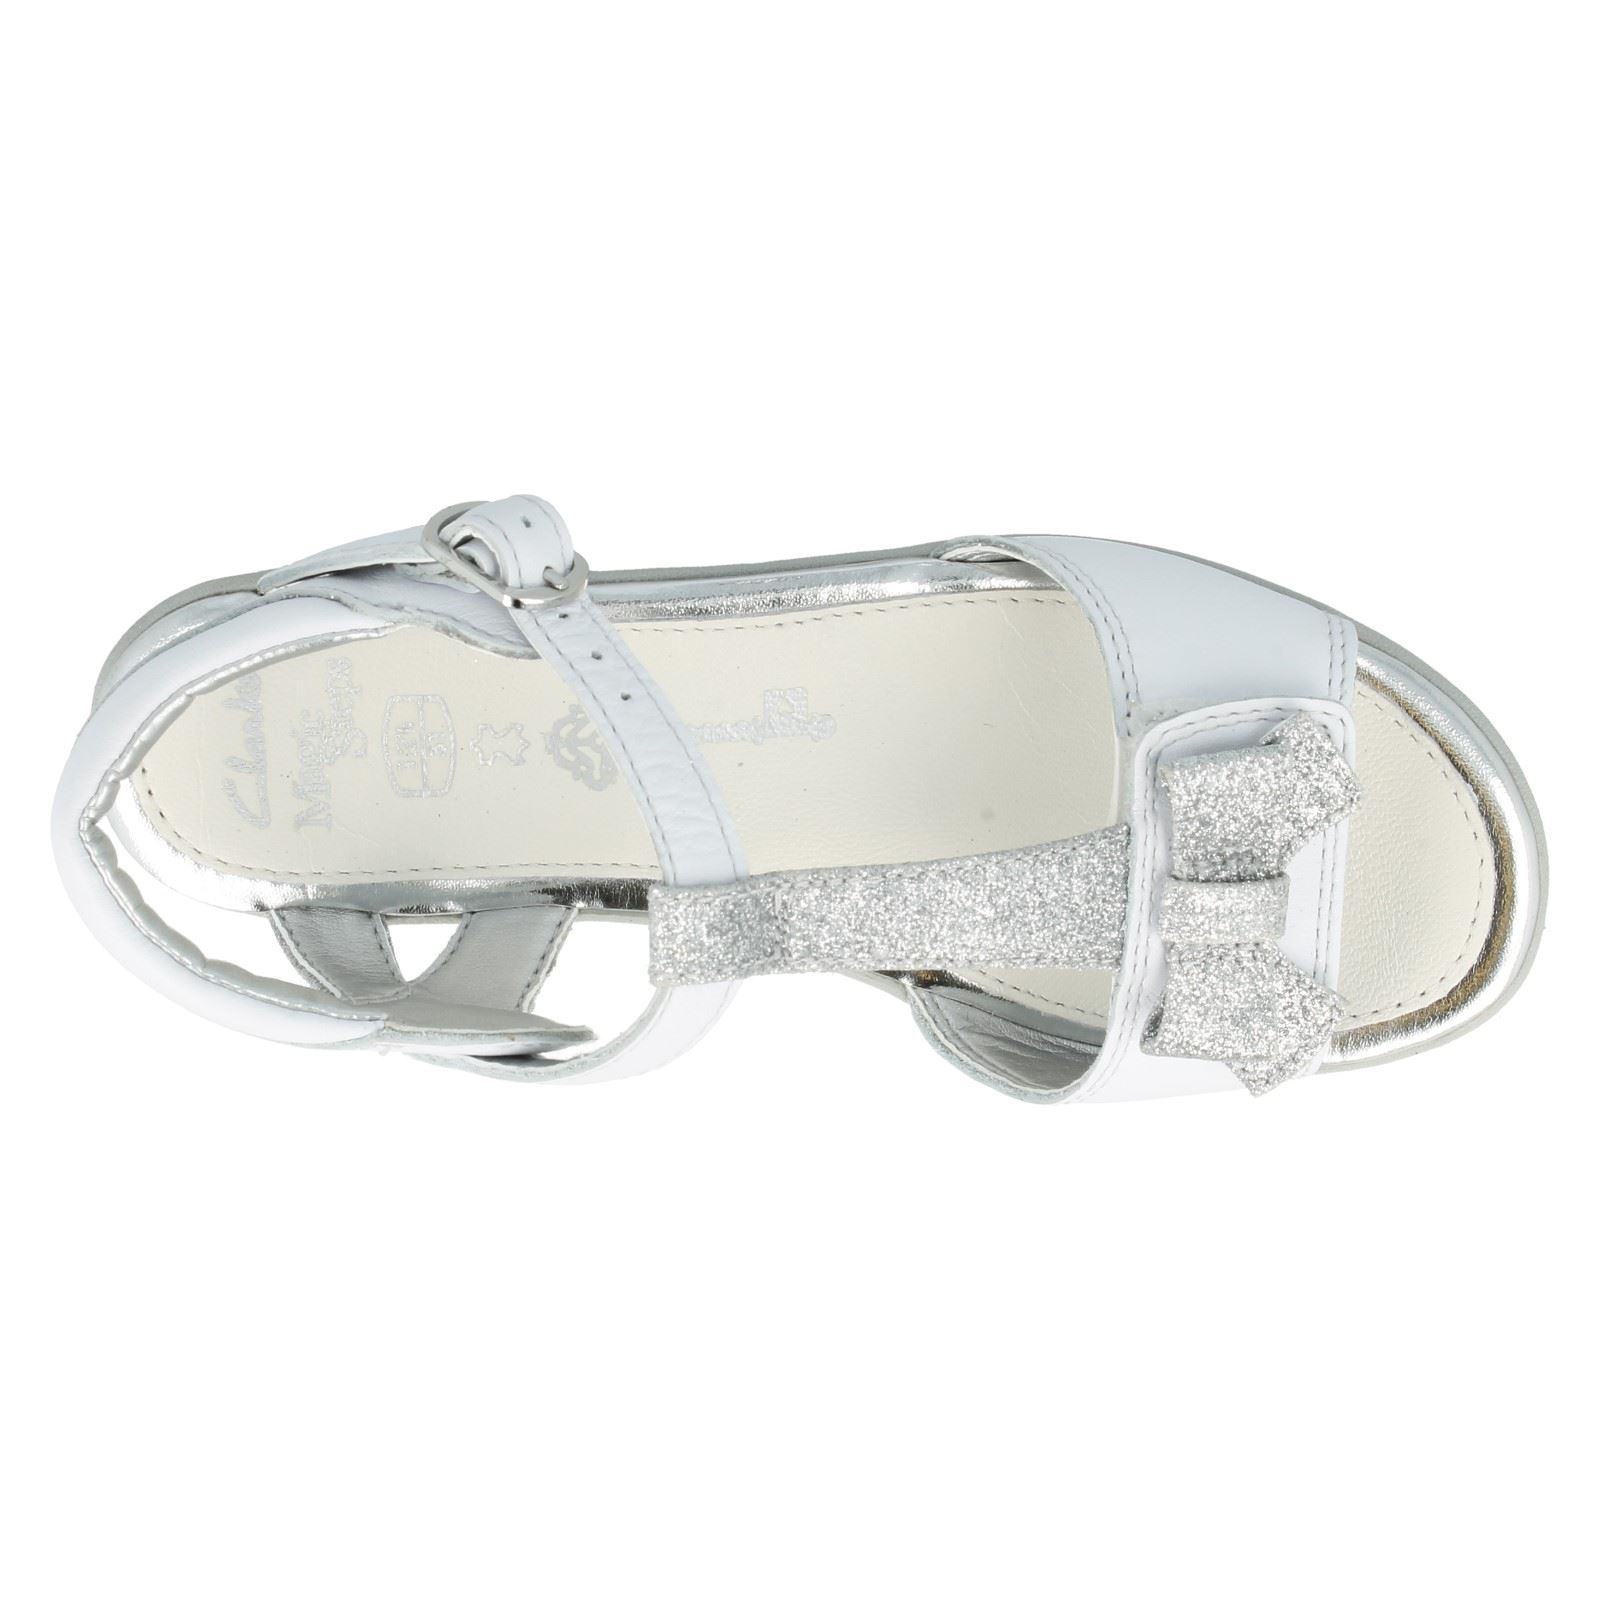 Girls Clarks Sandals Style - Orra Noon